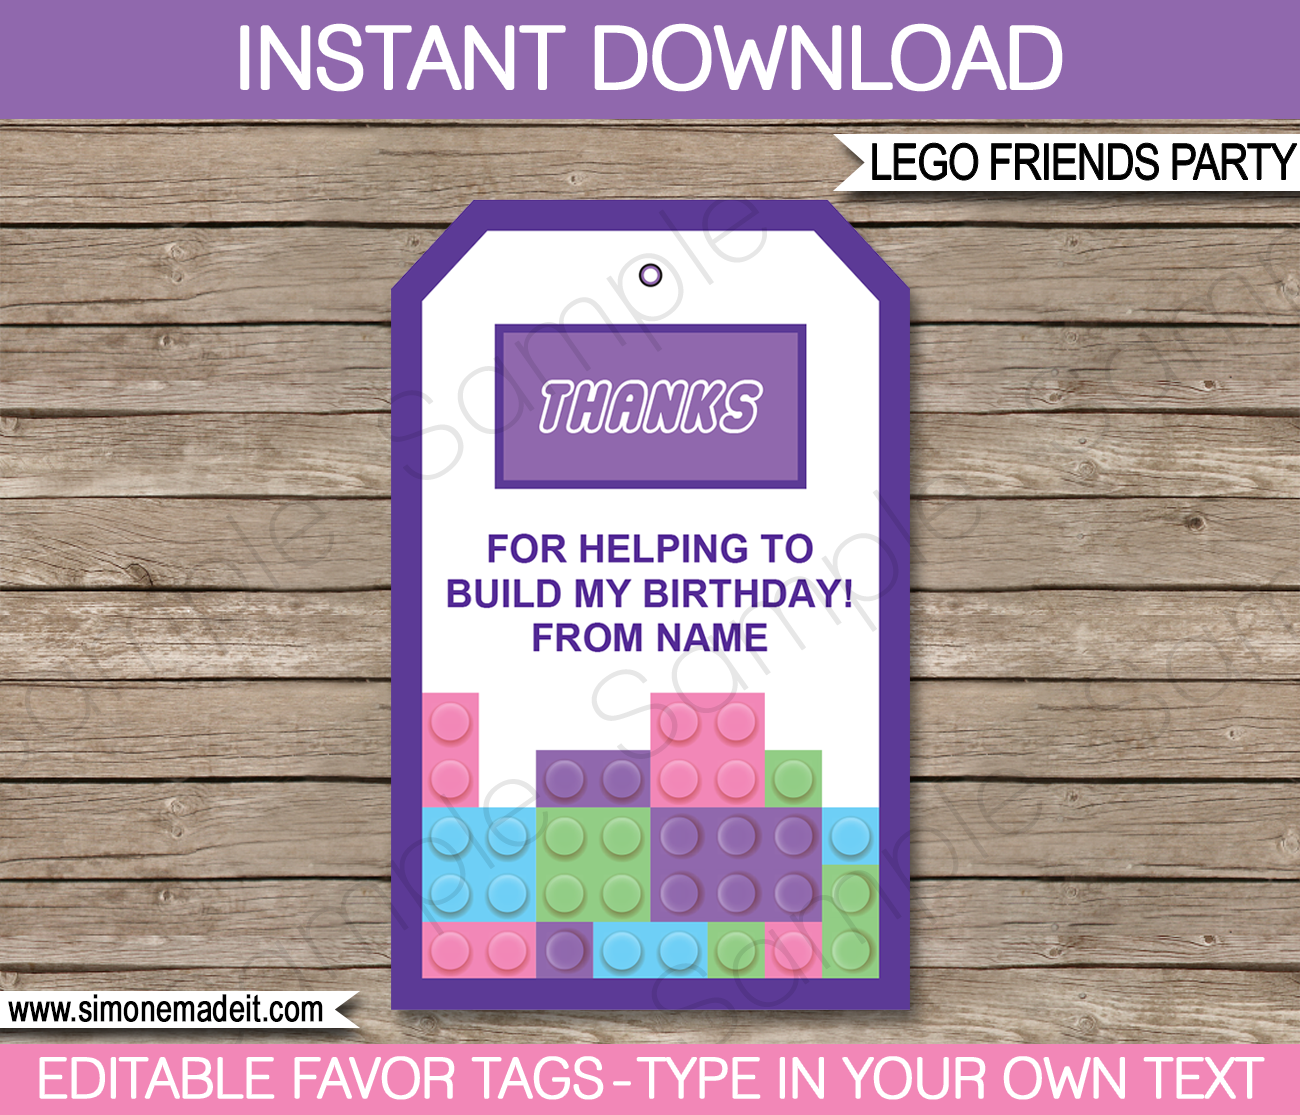 Lego Friends Favor Tags | Thank You Tags | Birthday Party | Editable DIY Template |